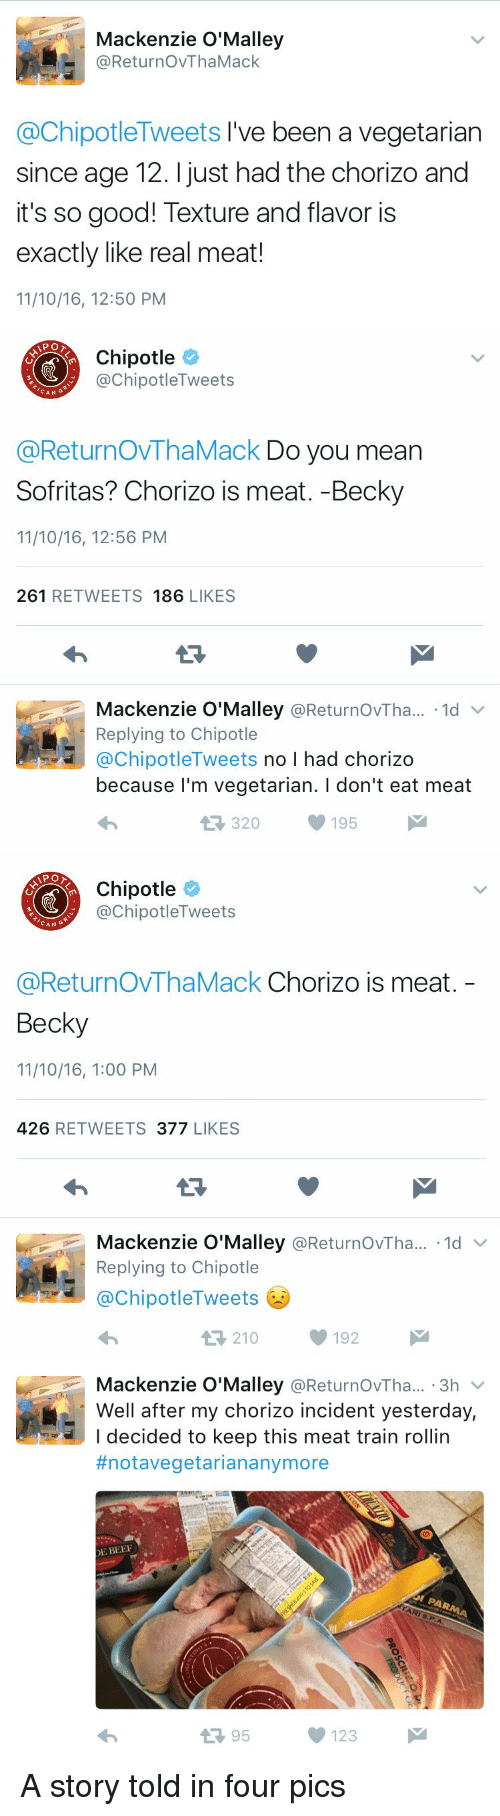 eating meat: Mackenzie O'Malley  @ReturnovThaMack  @ChipotleTweets I've been a vegetarian  since age 12. just had the chorizo and  it's so good! Texture and flavor is  exactly like real meat!  11/10/16, 12:50 PM   Chipotle  @Chi Tweets  nipotle CAN  @ReturnovThaMack Do you mean  Sofritas? Chorizo is meat. -Becky  11/10/16, 12:56 PM  261  RETWEETS 186  LIKES  Mackenzie O'Malley  @ReturnovTha... 1d v  Replying to Chipotle  @ChipotleTweets no I had chorizo  because I'm vegetarian. l don't eat meat  320 195  M   Chipotle  @ChipotleTweets  CAN  G  @ReturnovThaMack Chorizo is meat  Becky  11/10/16, 1:00 PM  426  RETWEETS  377  LIKES  Mackenzie O'Malley  @ReturnovTha... 1d  v  Replying to Chipotle  @ChipotleTweets  210 192   Mackenzie O'Malley  @ReturnovTha... 3h  v  Well after my chorizo incident yesterday,  I decided to keep this meat train rollin  #notavegetarian anymore  DE BEEF  t 95  123 A story told in four pics